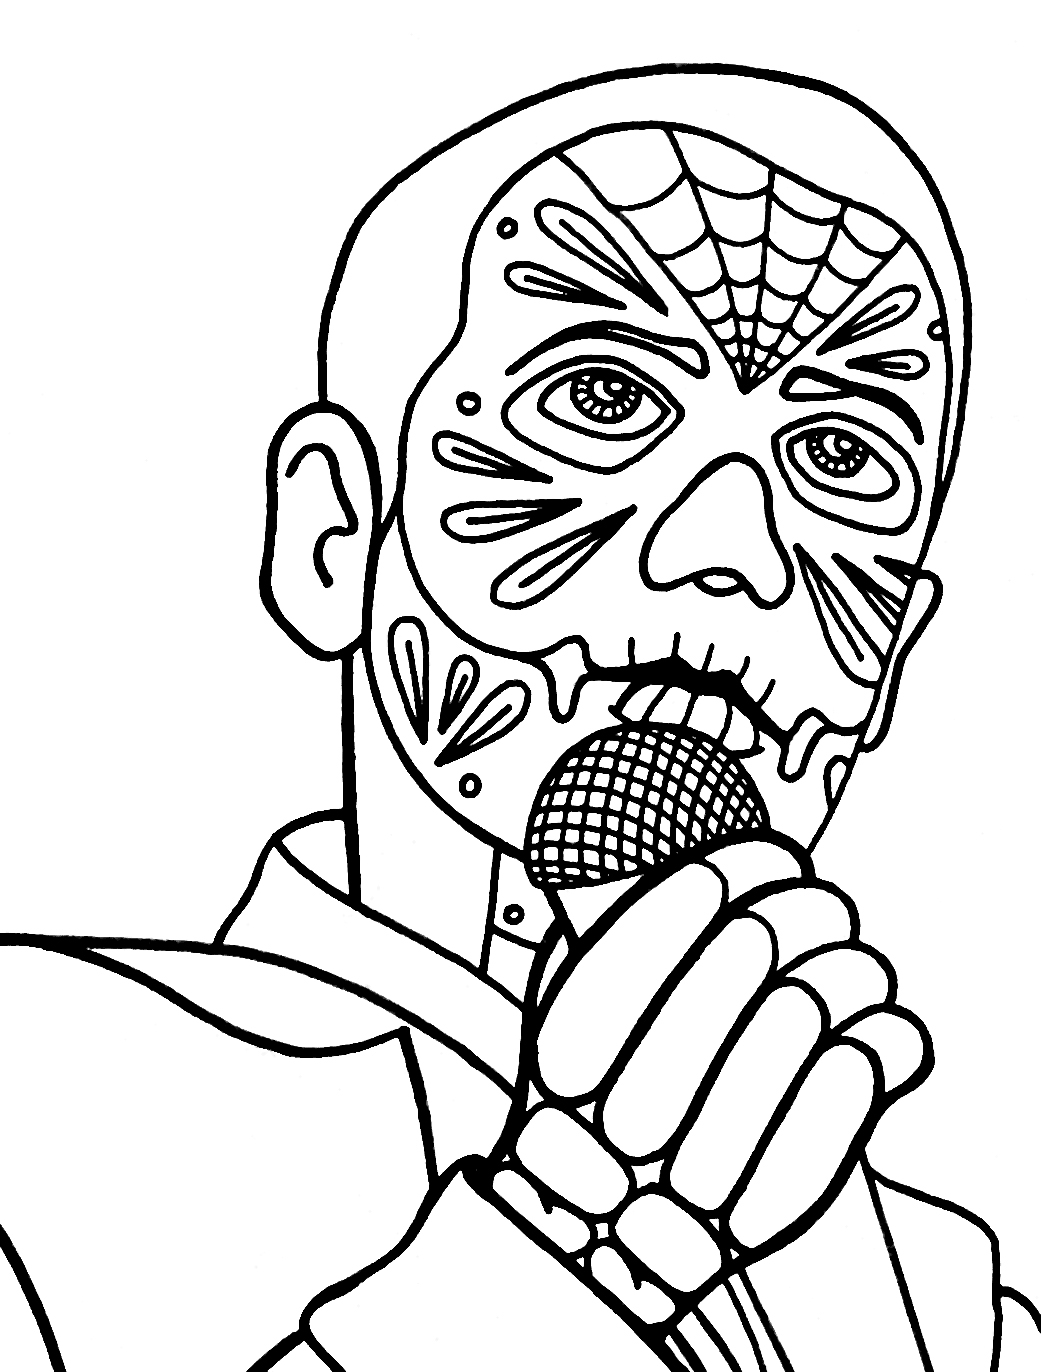 Free Coloring Pages Of Best Teacher Ever